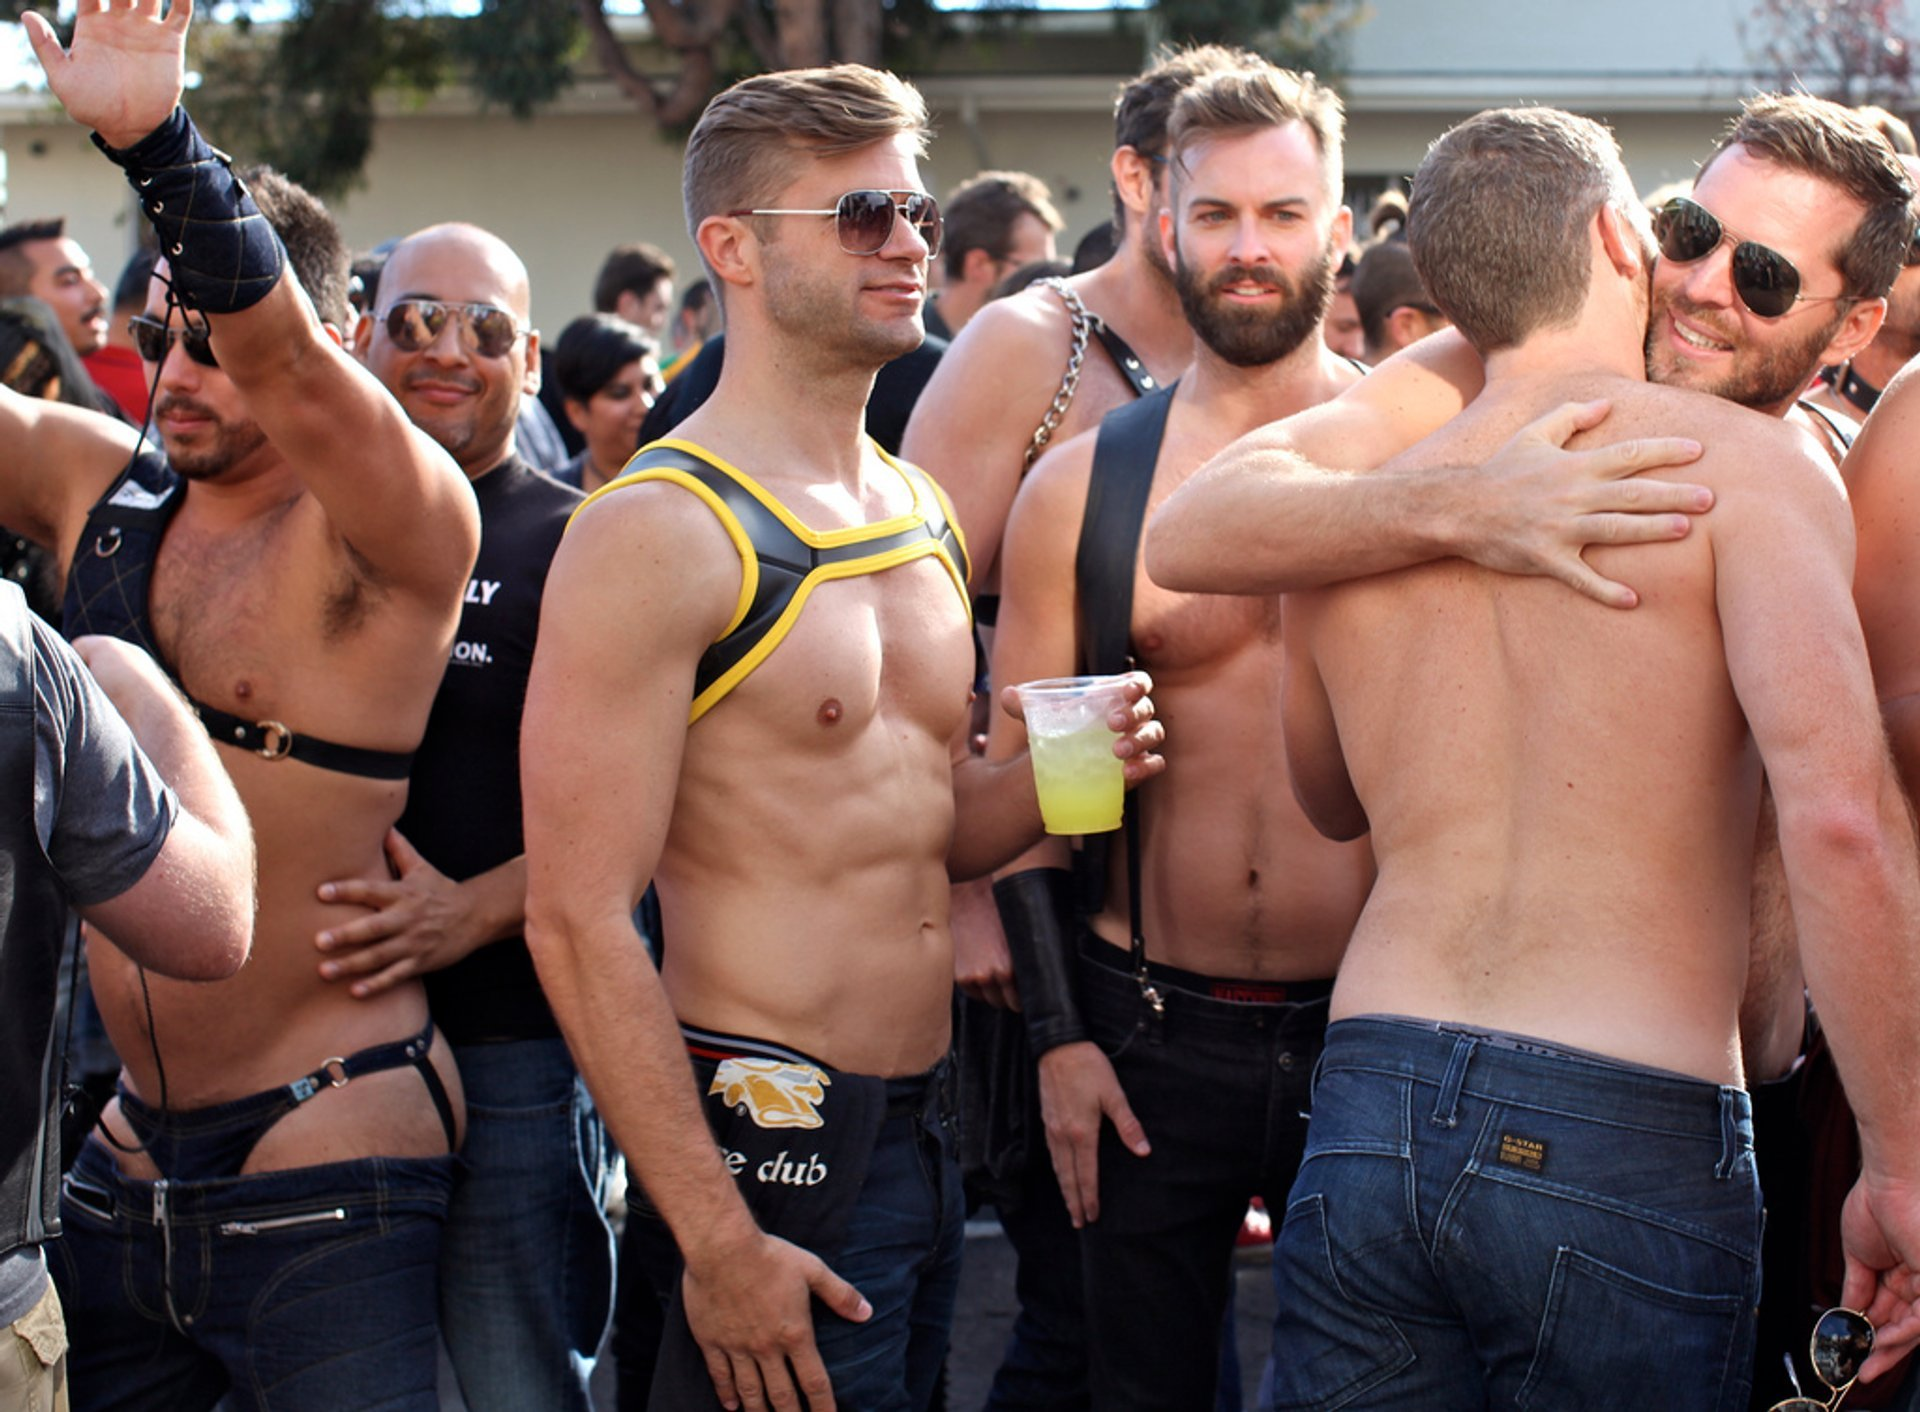 Gay events europe